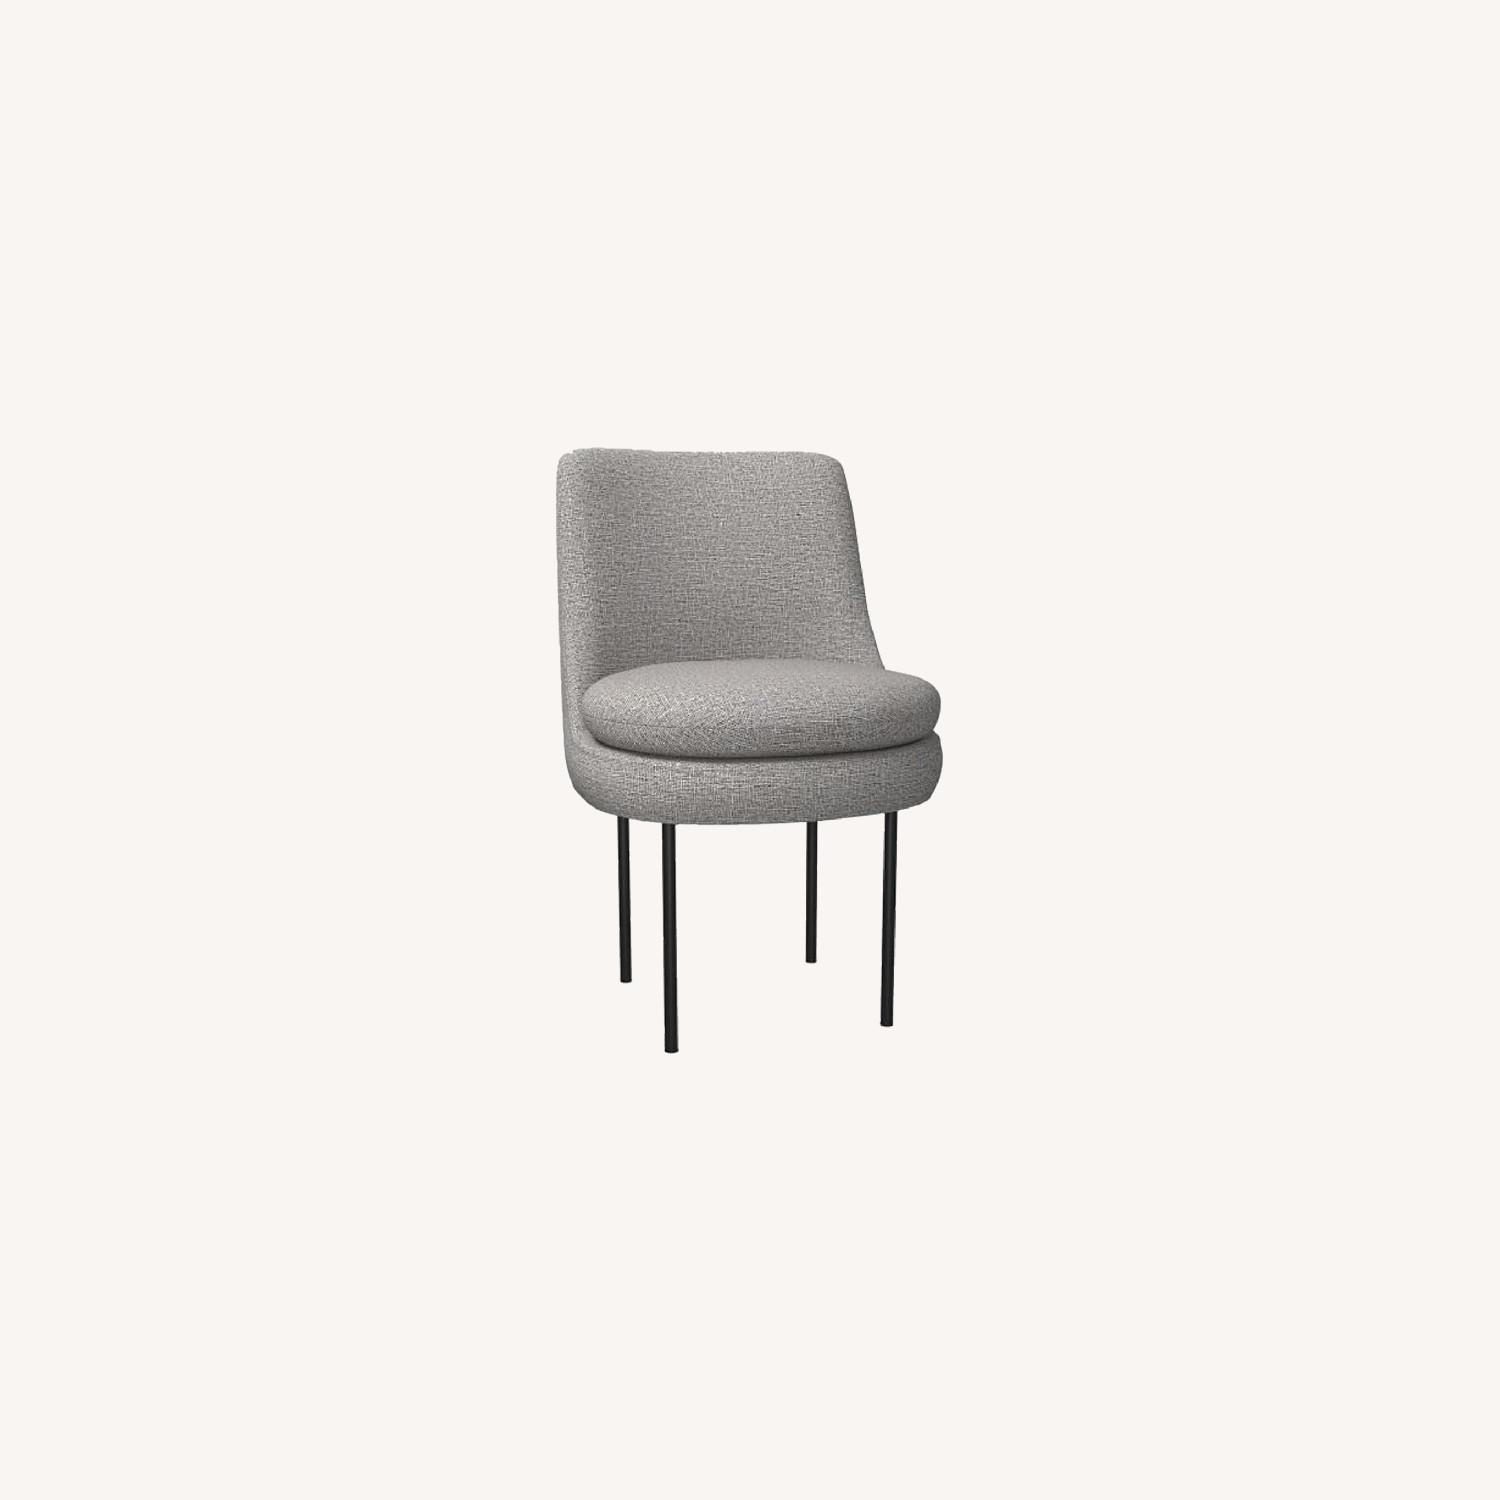 West Elm Leather Upholstered Dining Chair in Feather Grey - image-0